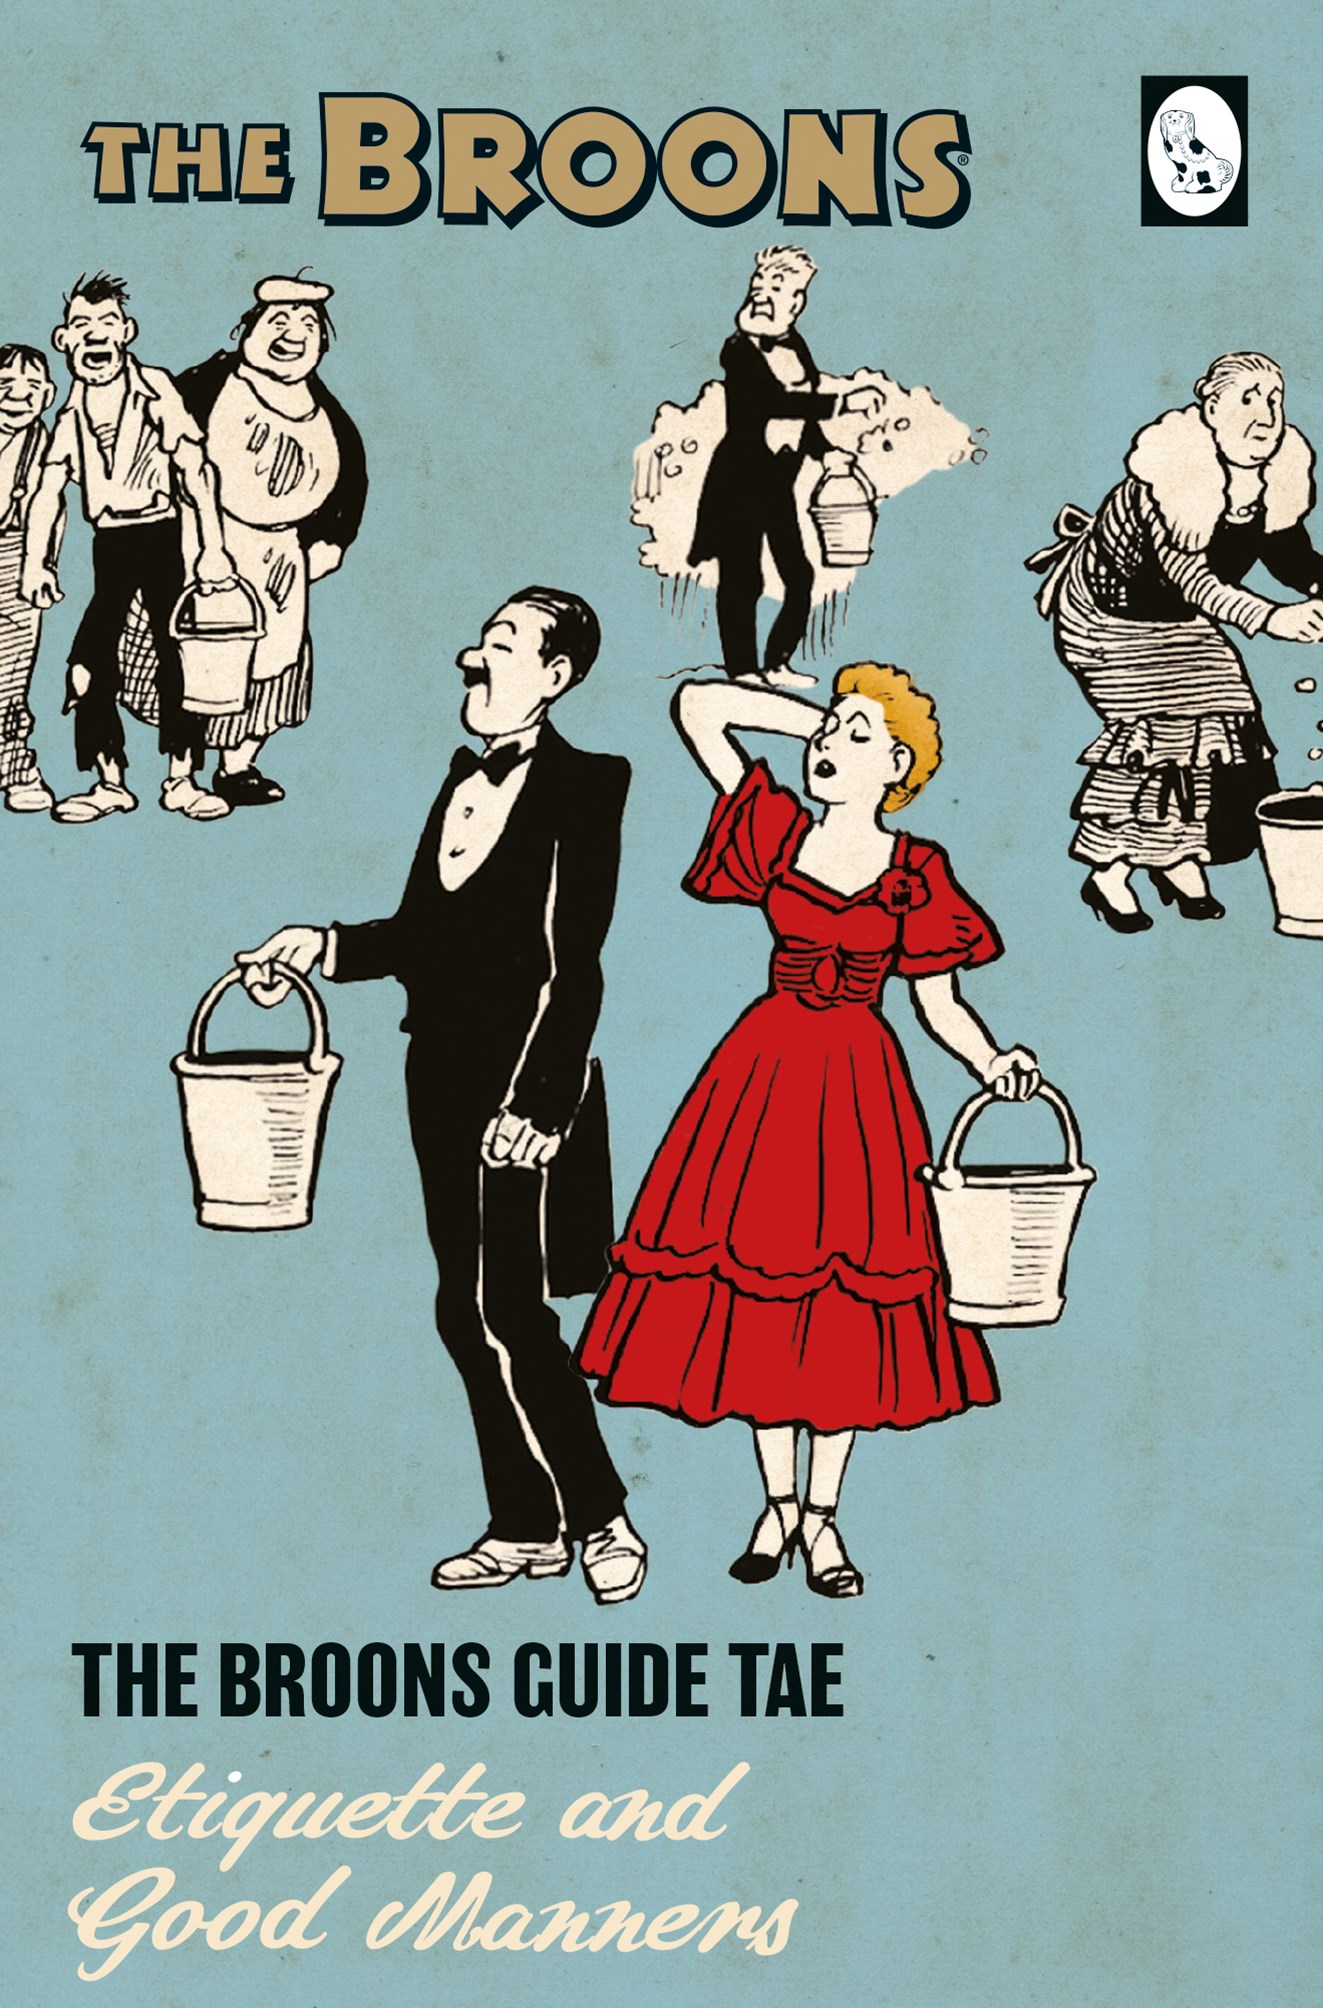 The Broons Guide Tae... Etiquette and Good Manners